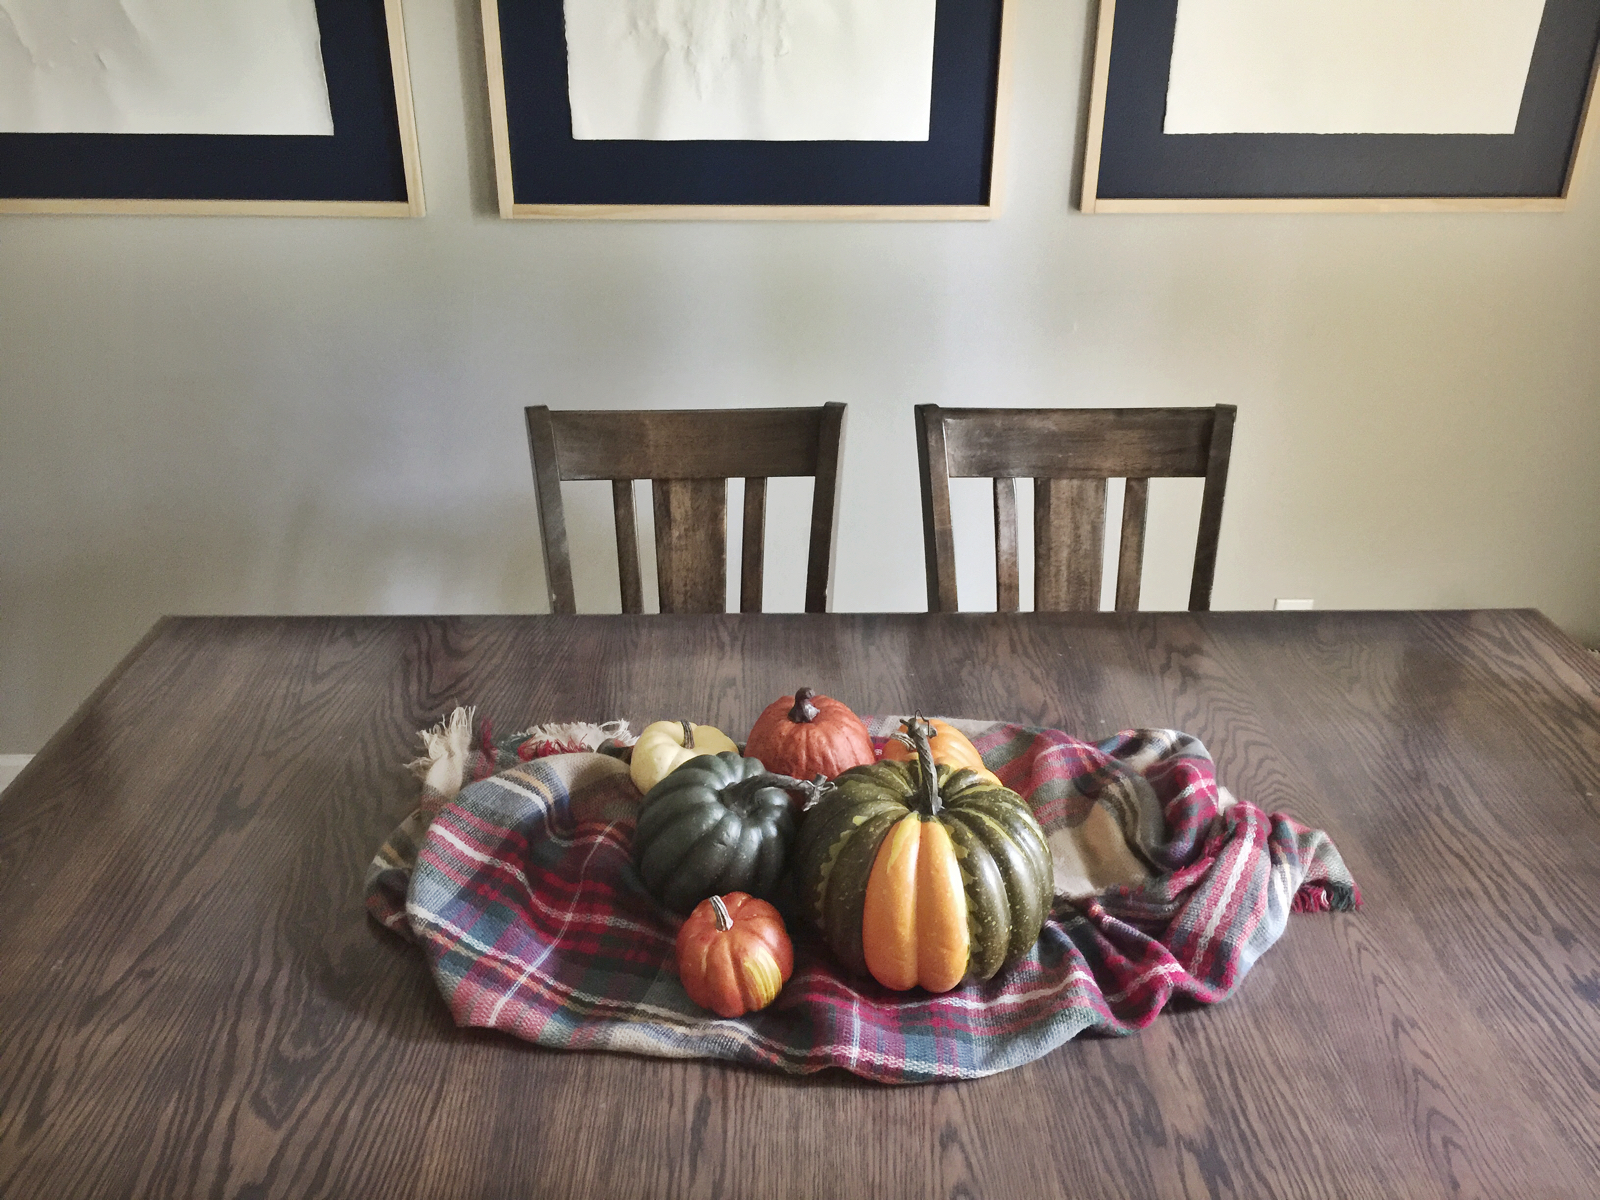 Looking for a simple and inexpensive fall tablescape idea? I've created three easy, DIY pumpkin centerpieces using things you already have around your home! They would look great on your table as Thanksgiving decorations as well!